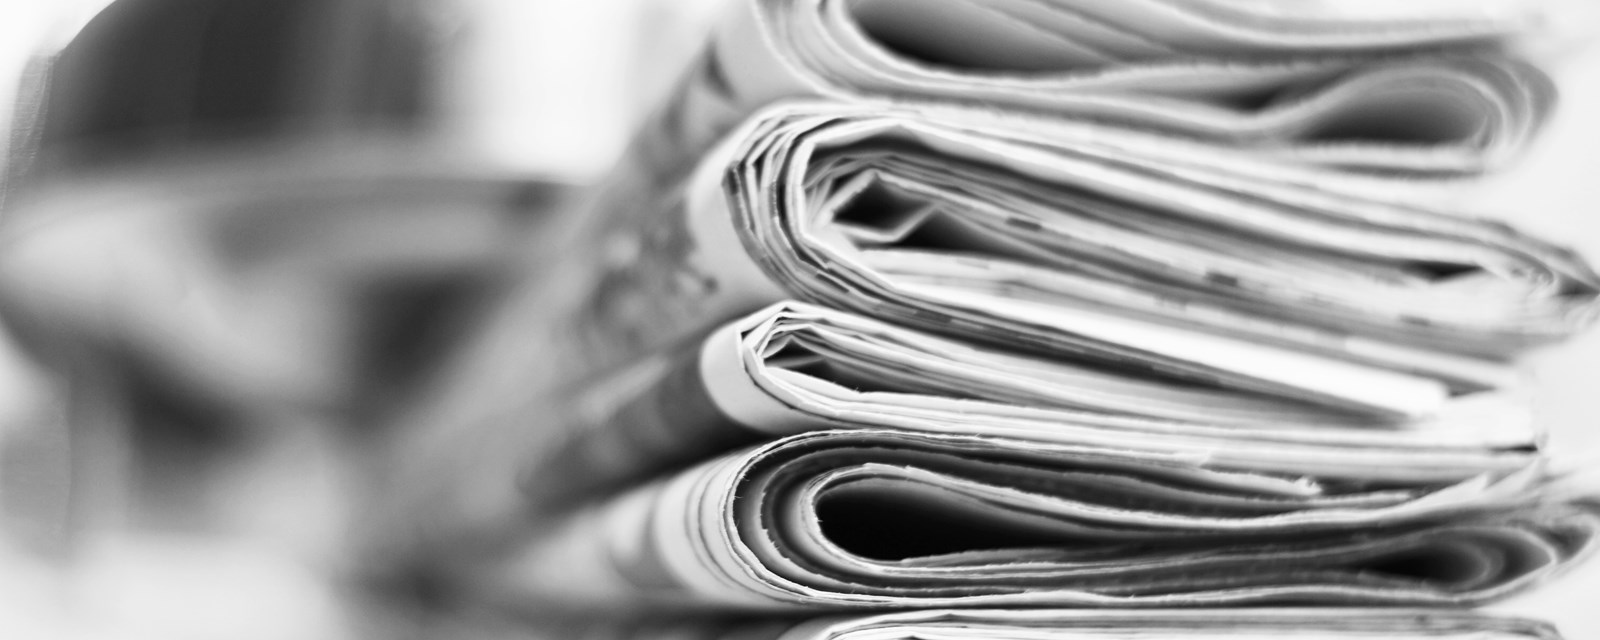 Newspaper reporting of NHS Cancer Drugs Fund misleading | The Royal Society  of Medicine